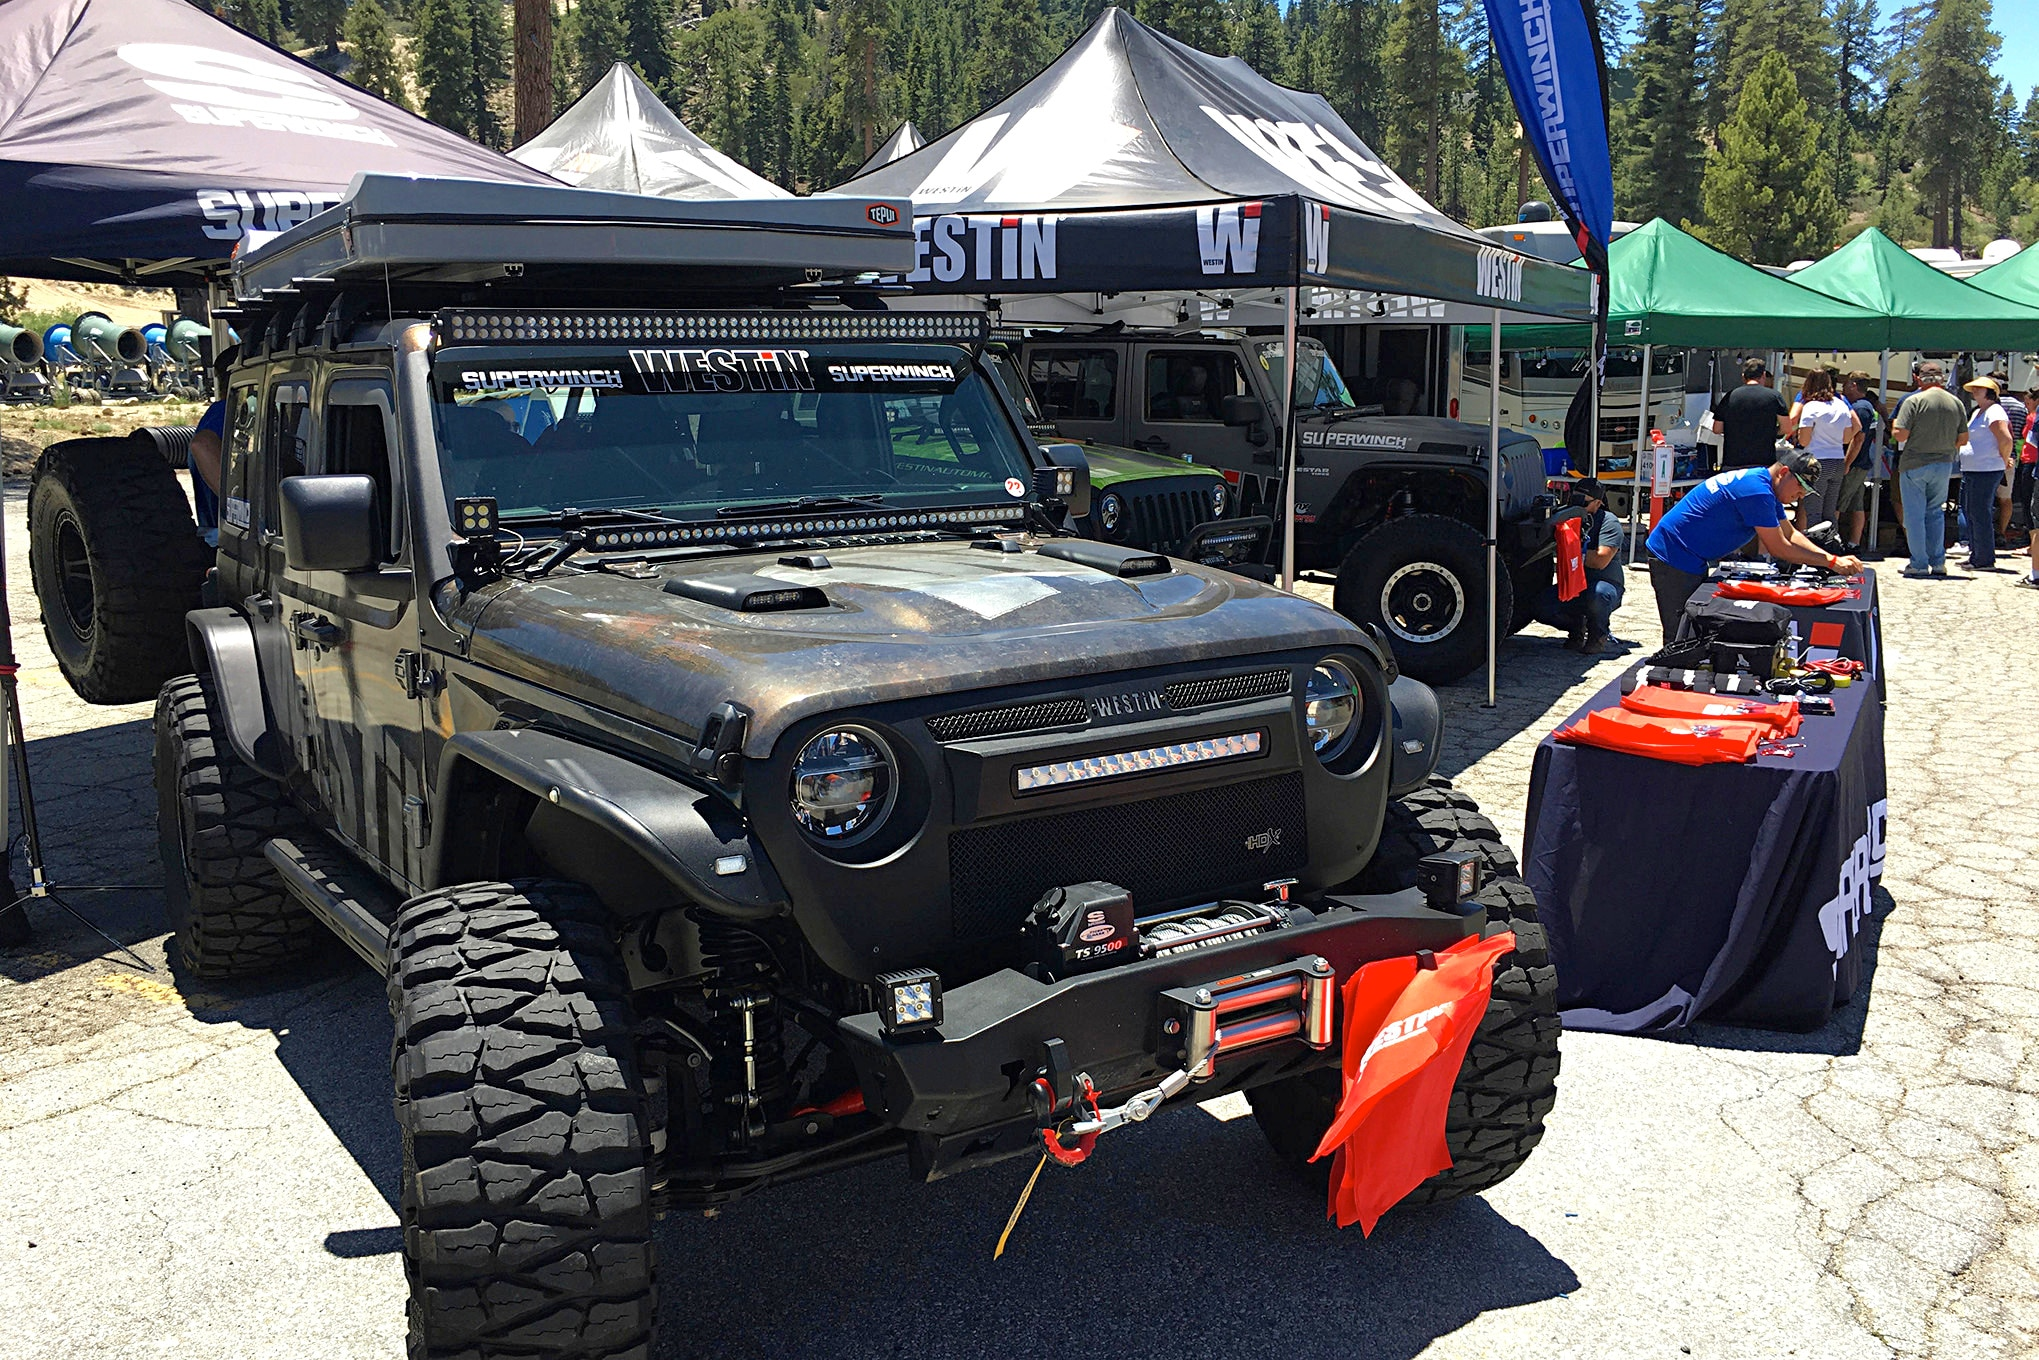 051 jeep event big bear forest fest 2019 inland empire